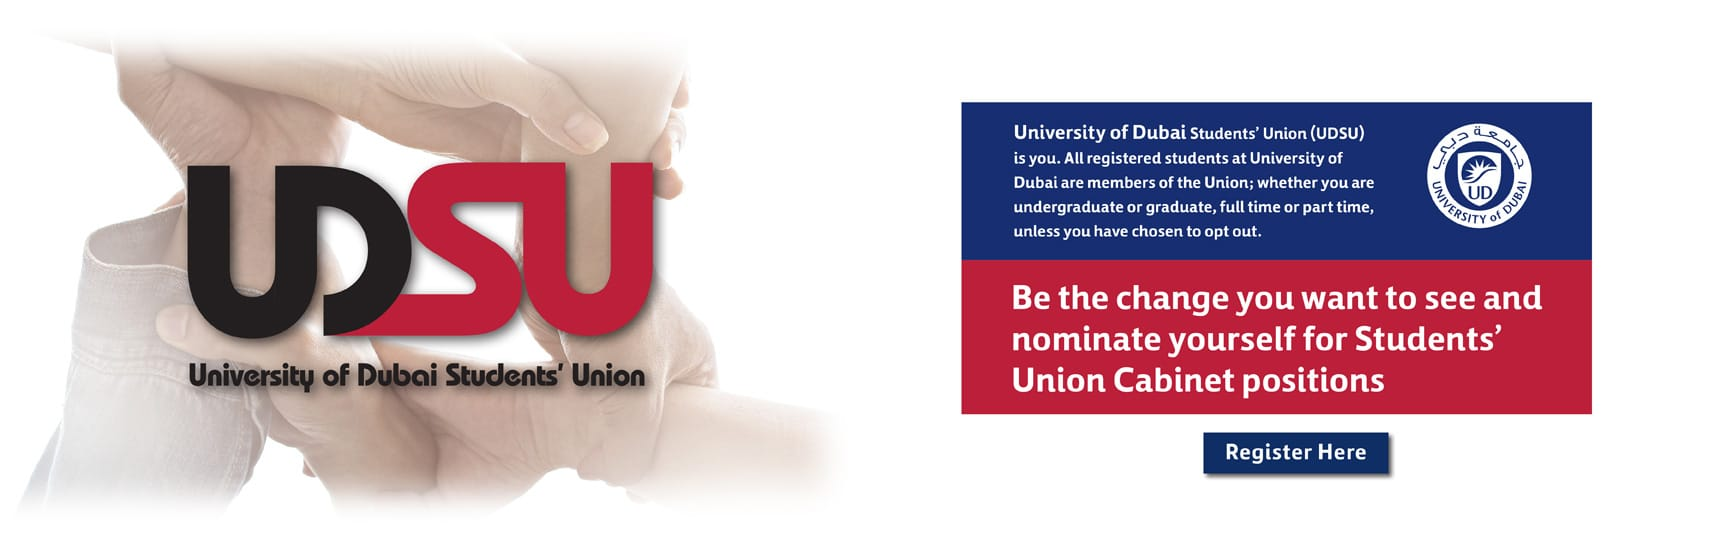 Welcome to the University of Dubai Students' Union!